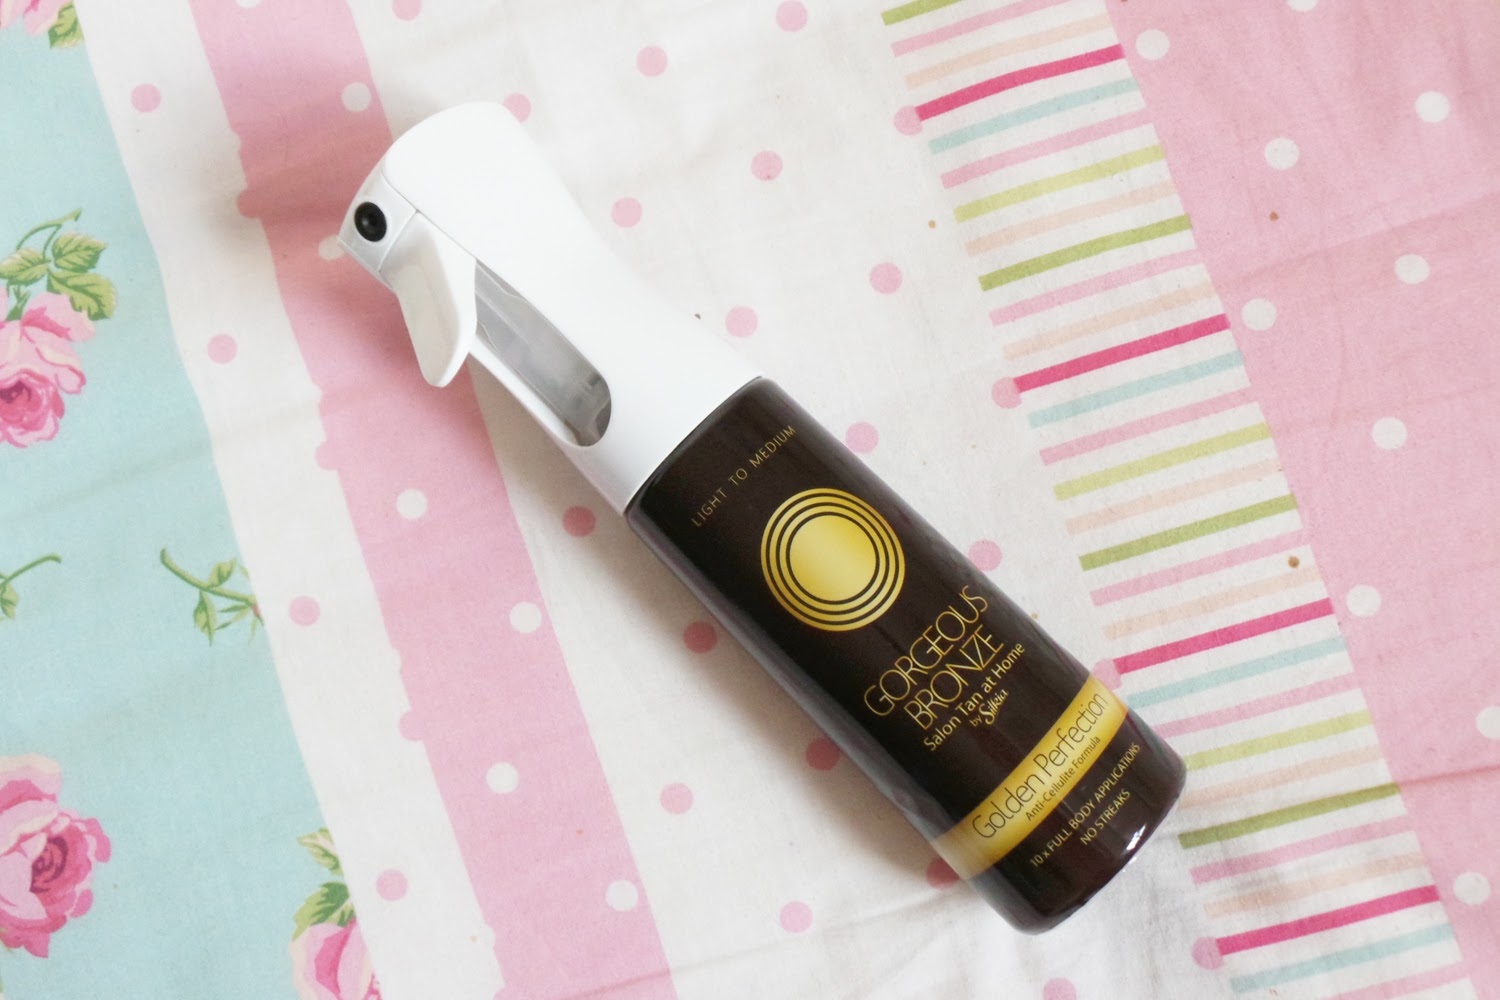 Gorgeous Bronze Salon Tan At Home  Review, Gorgeous Bronze Salon Tan At Home Image, Gorgeous Bronze Salon Tan At Home Light to medium review, Gorgeous Bronze Salon Tan At Home blog review, beauty blog, beauty blogger, uk beauty blogger, tan review, spray tan review,